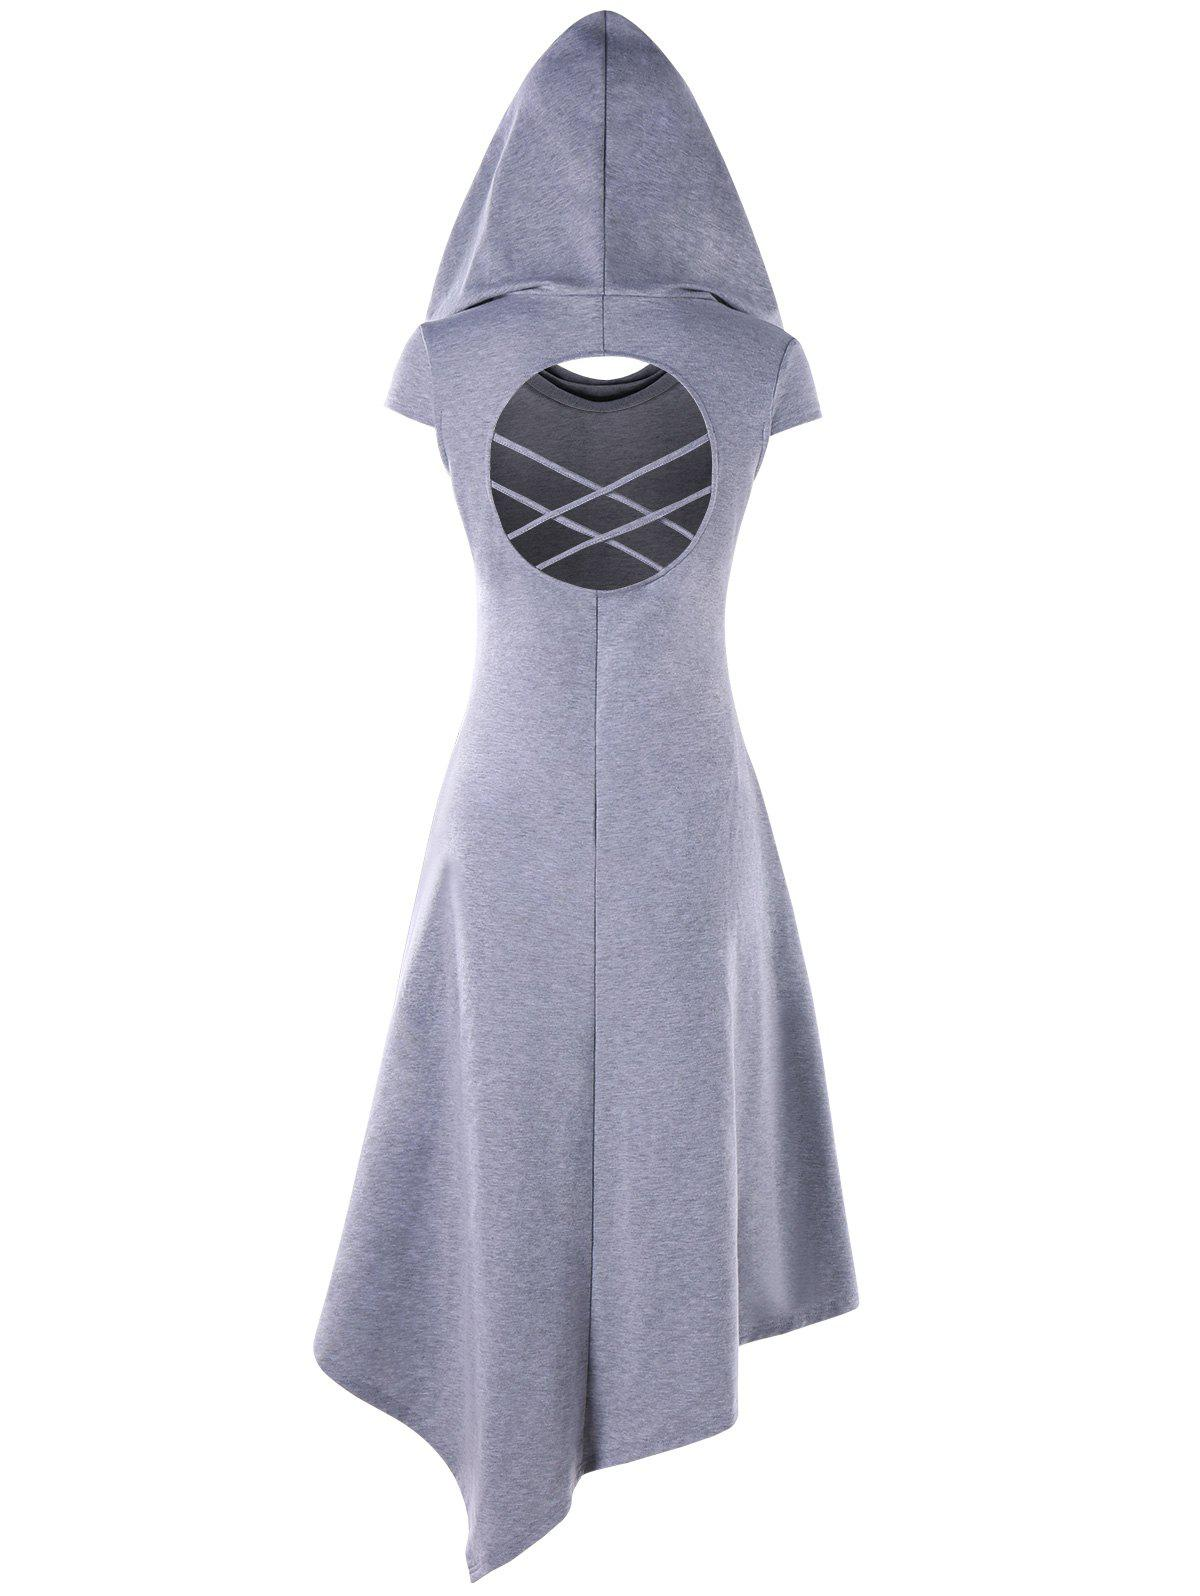 Hooded Criss Cross Cut Out Handkerchief Dress - LIGHT GRAY L